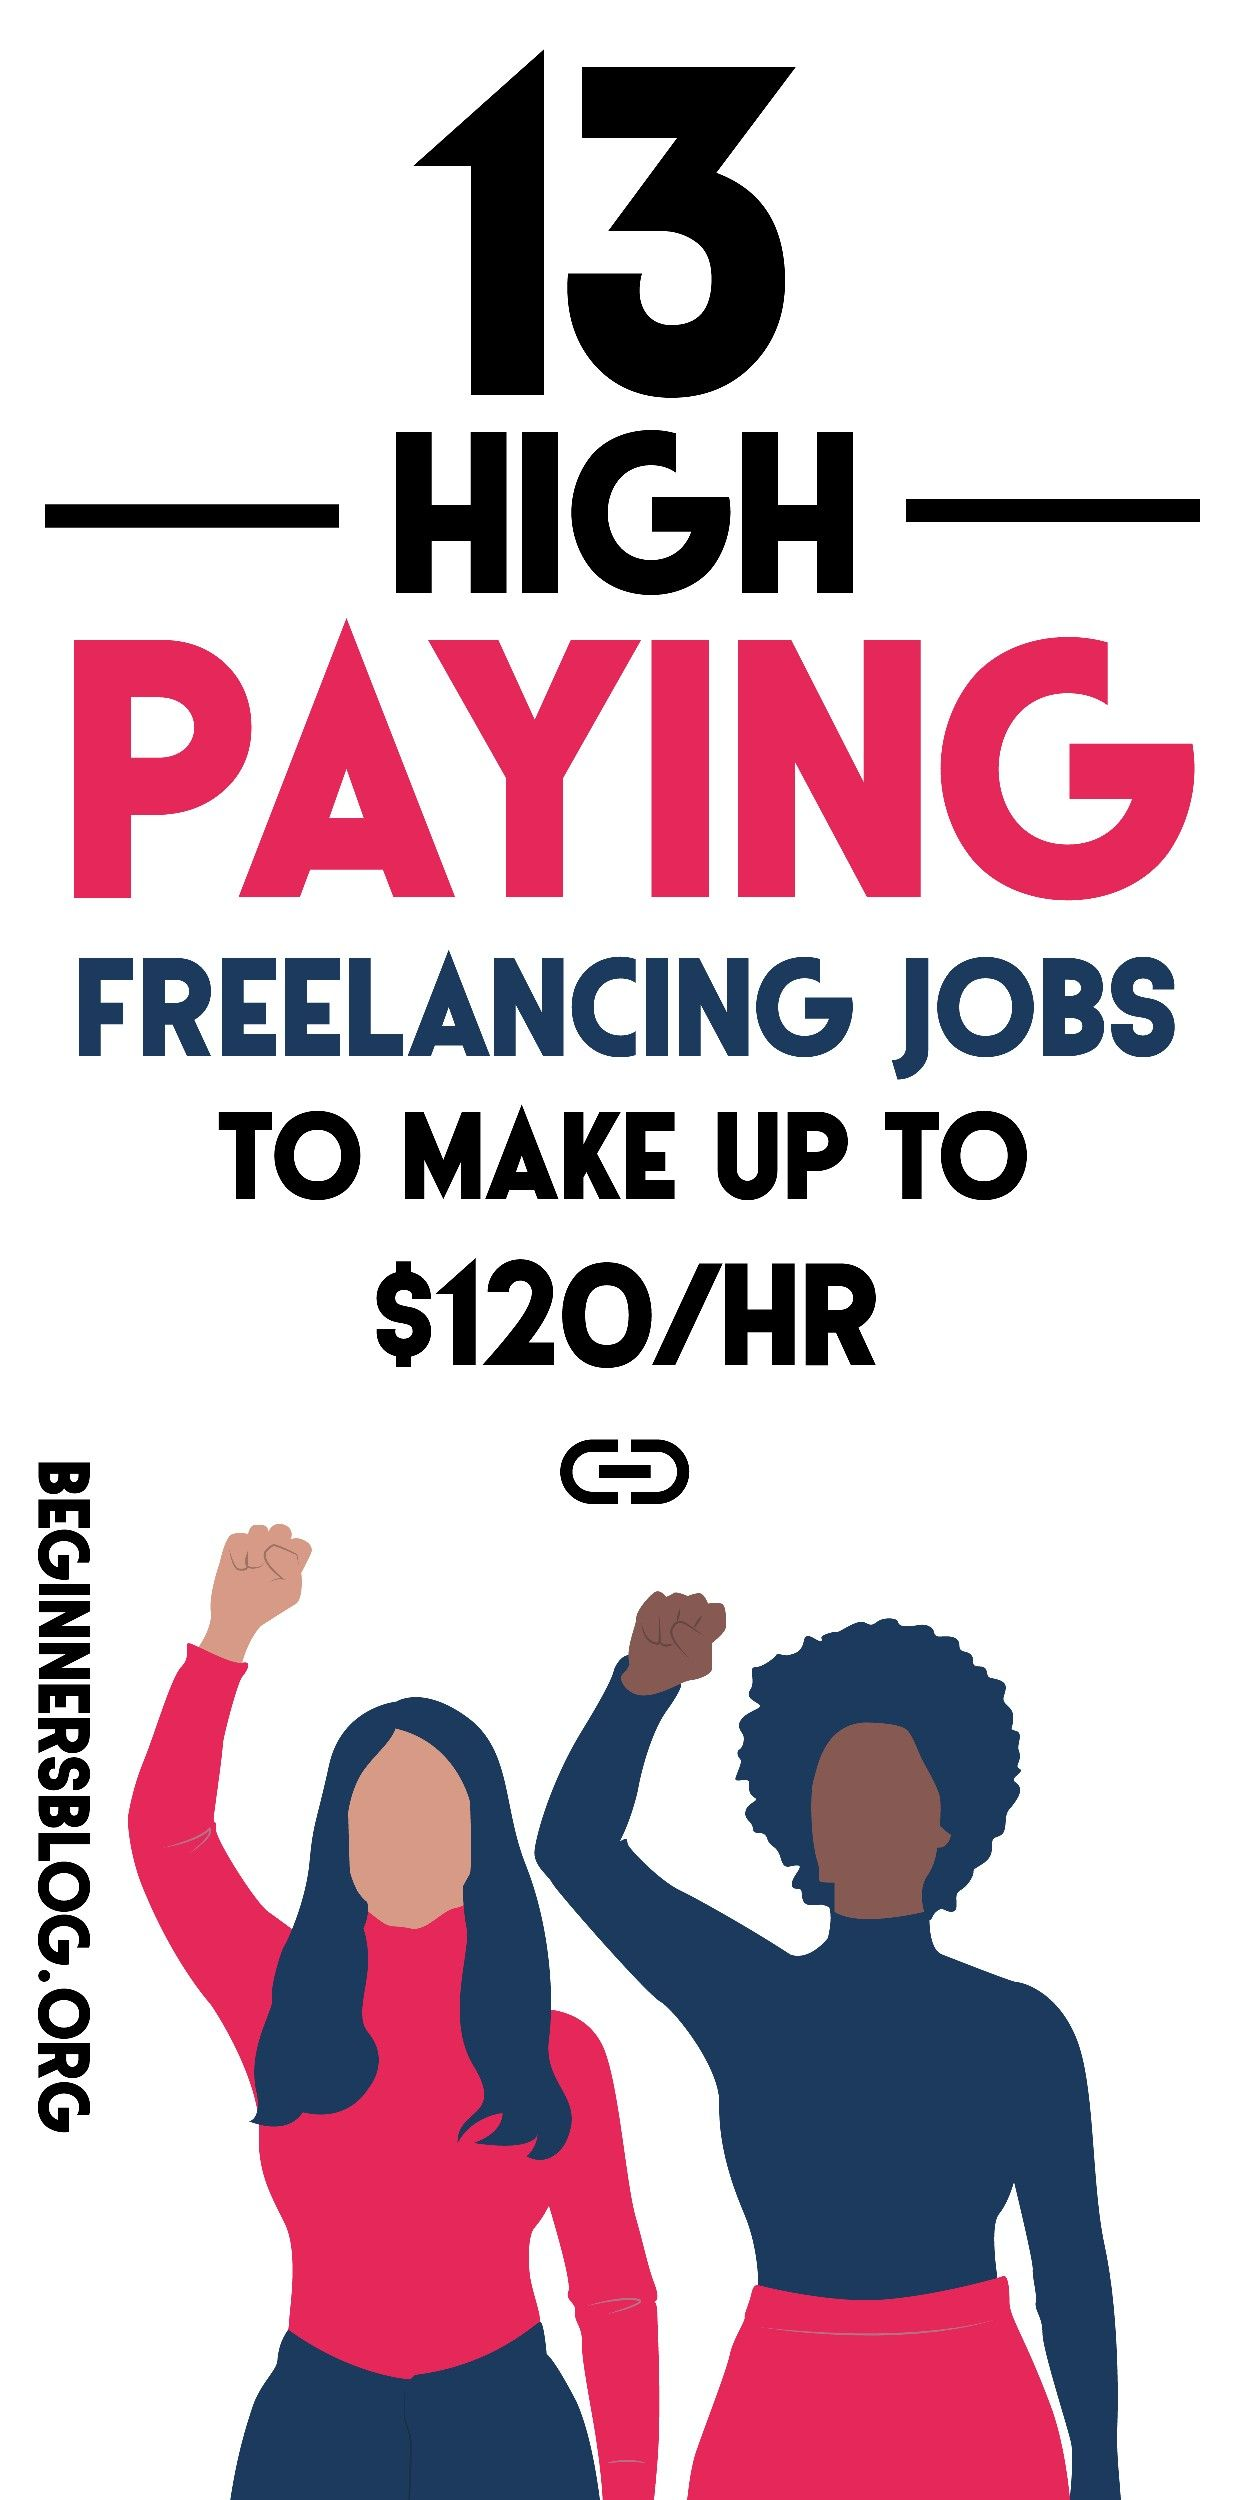 13 High Paying Freelancing Jobs To Make Up To 120 Hr In 2020 Freelancing Jobs Online Jobs For Moms Work From Home Jobs